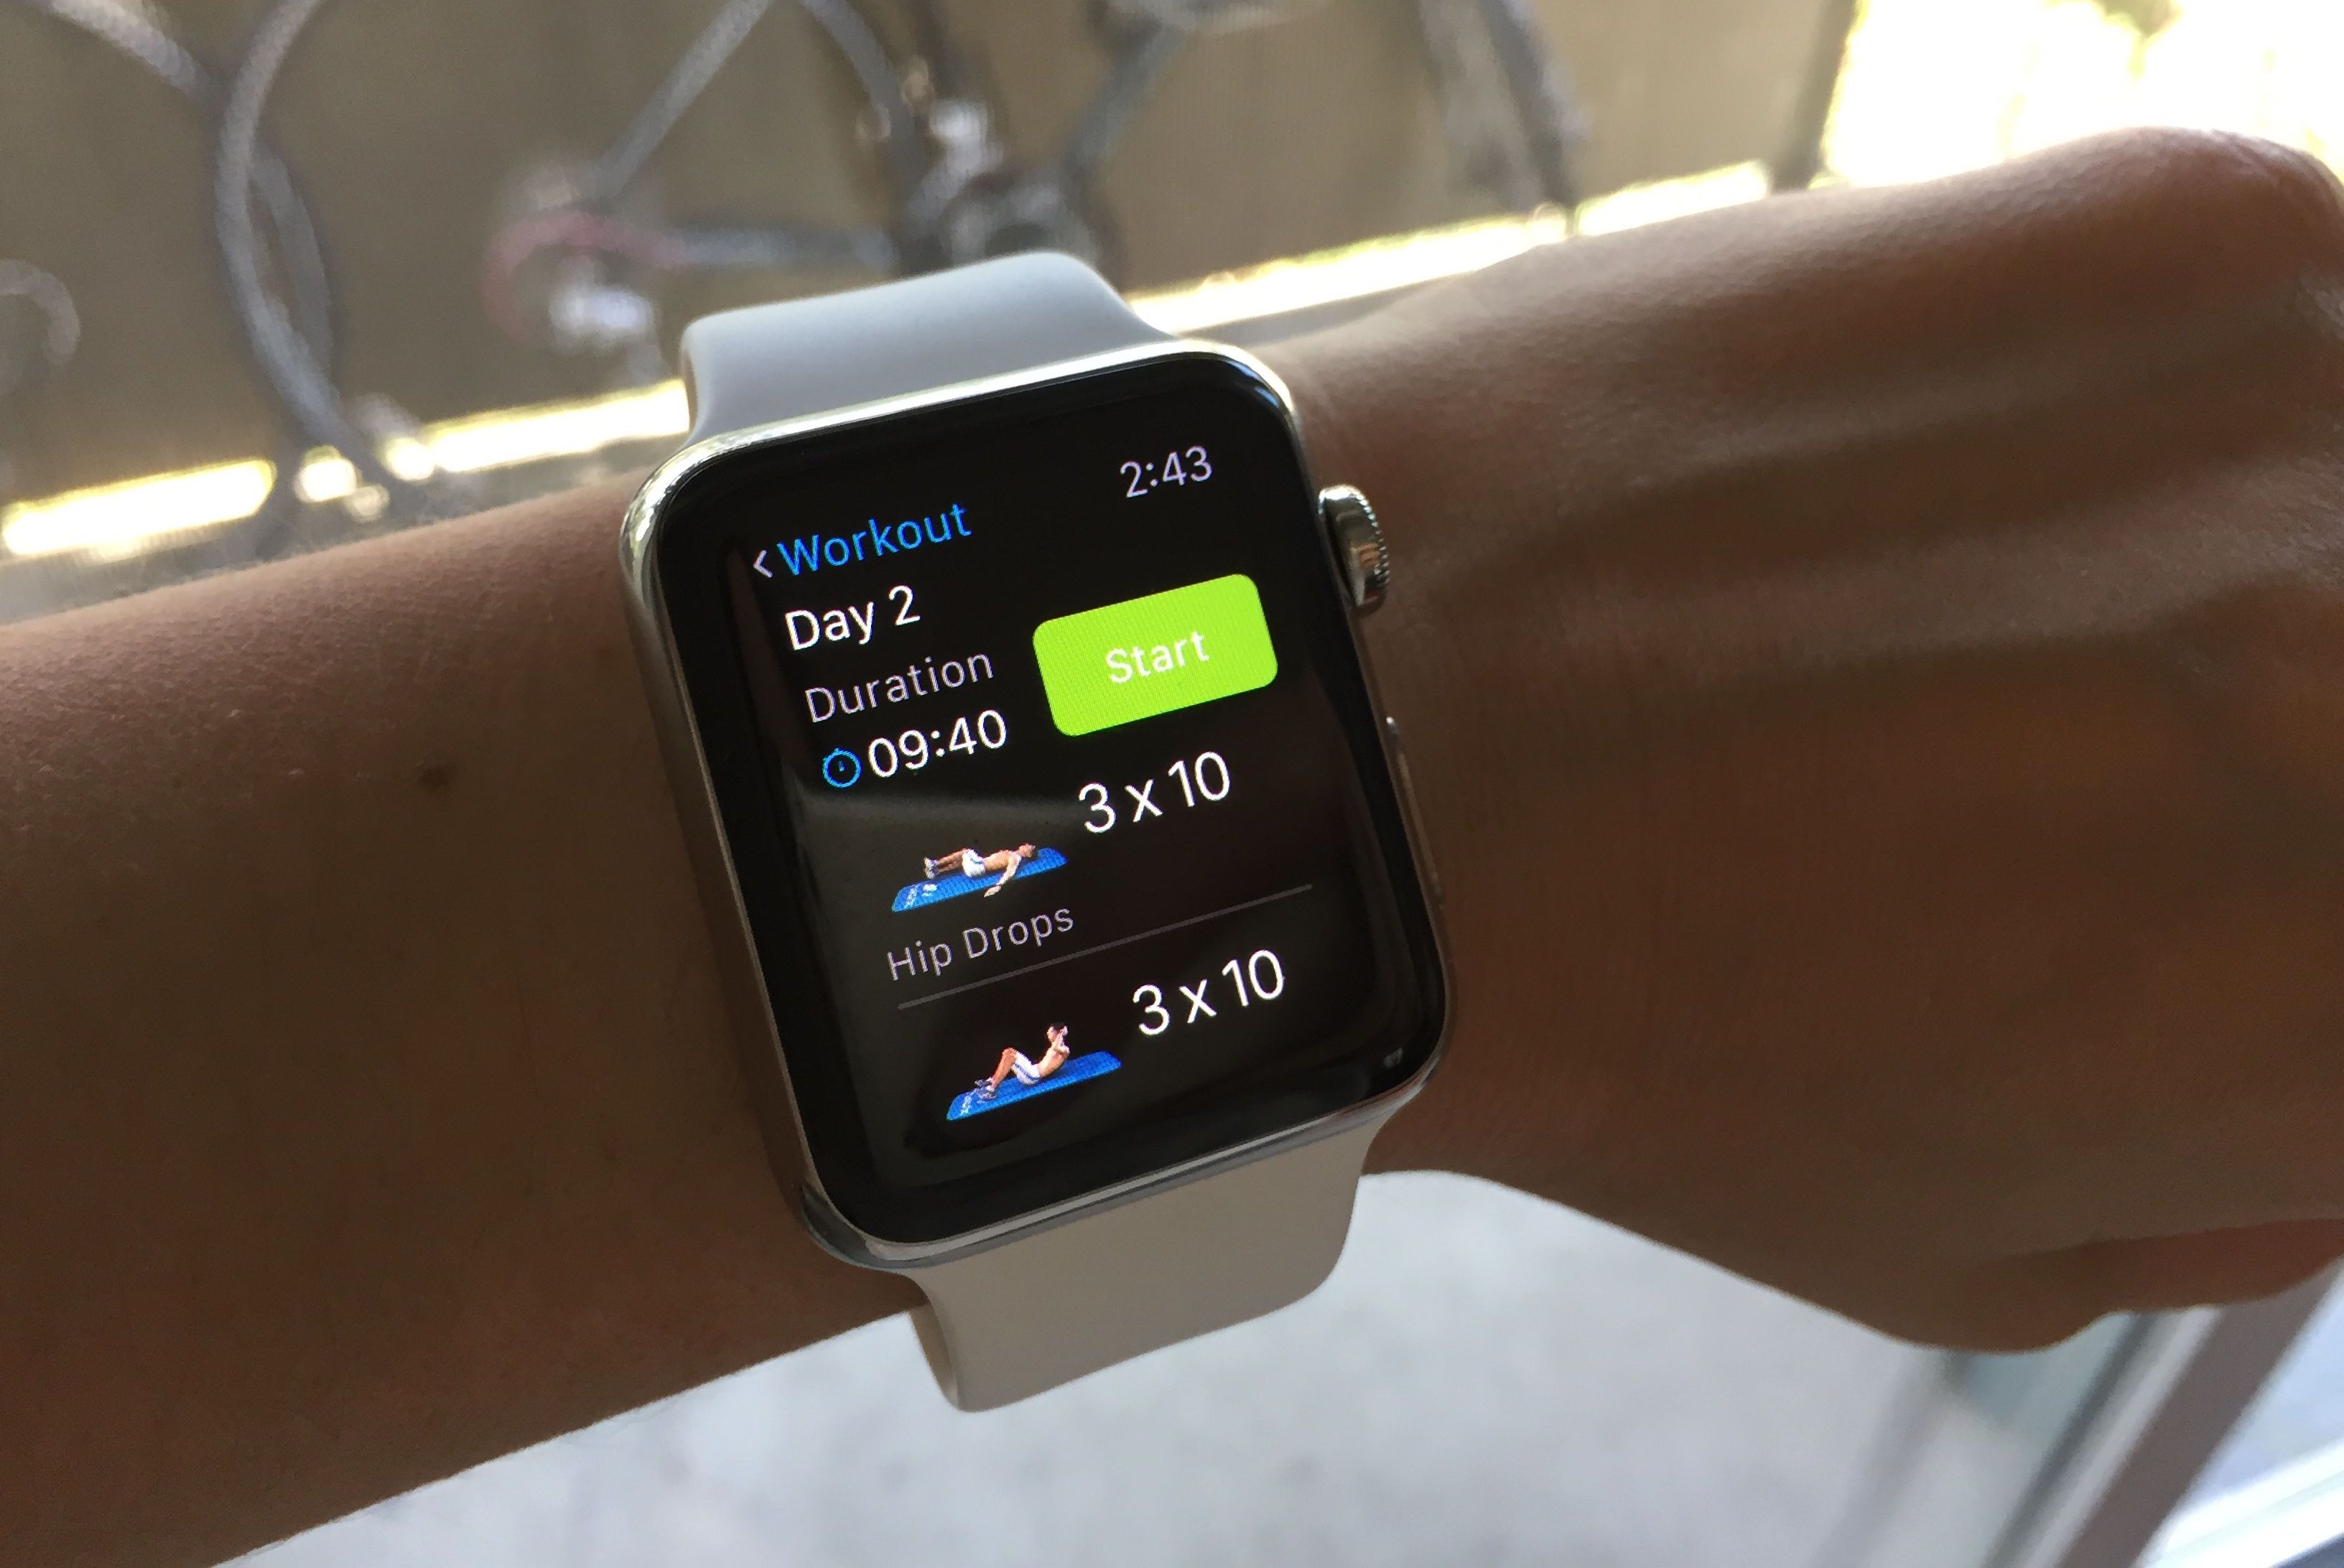 Is it possible to get a burn from the Apple Watch?